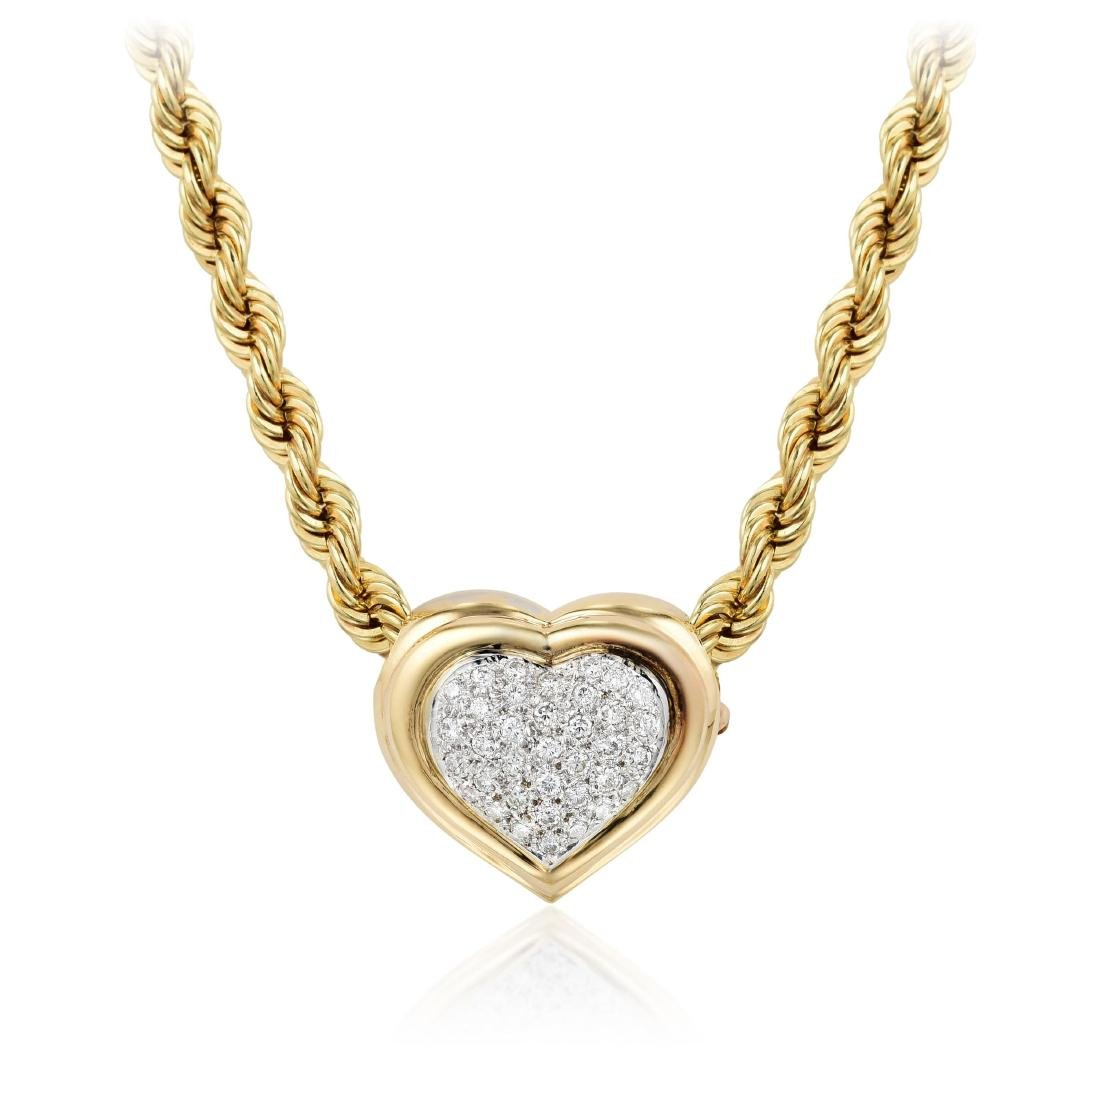 A 14K Gold Necklace with Diamond Pendant / Brooch